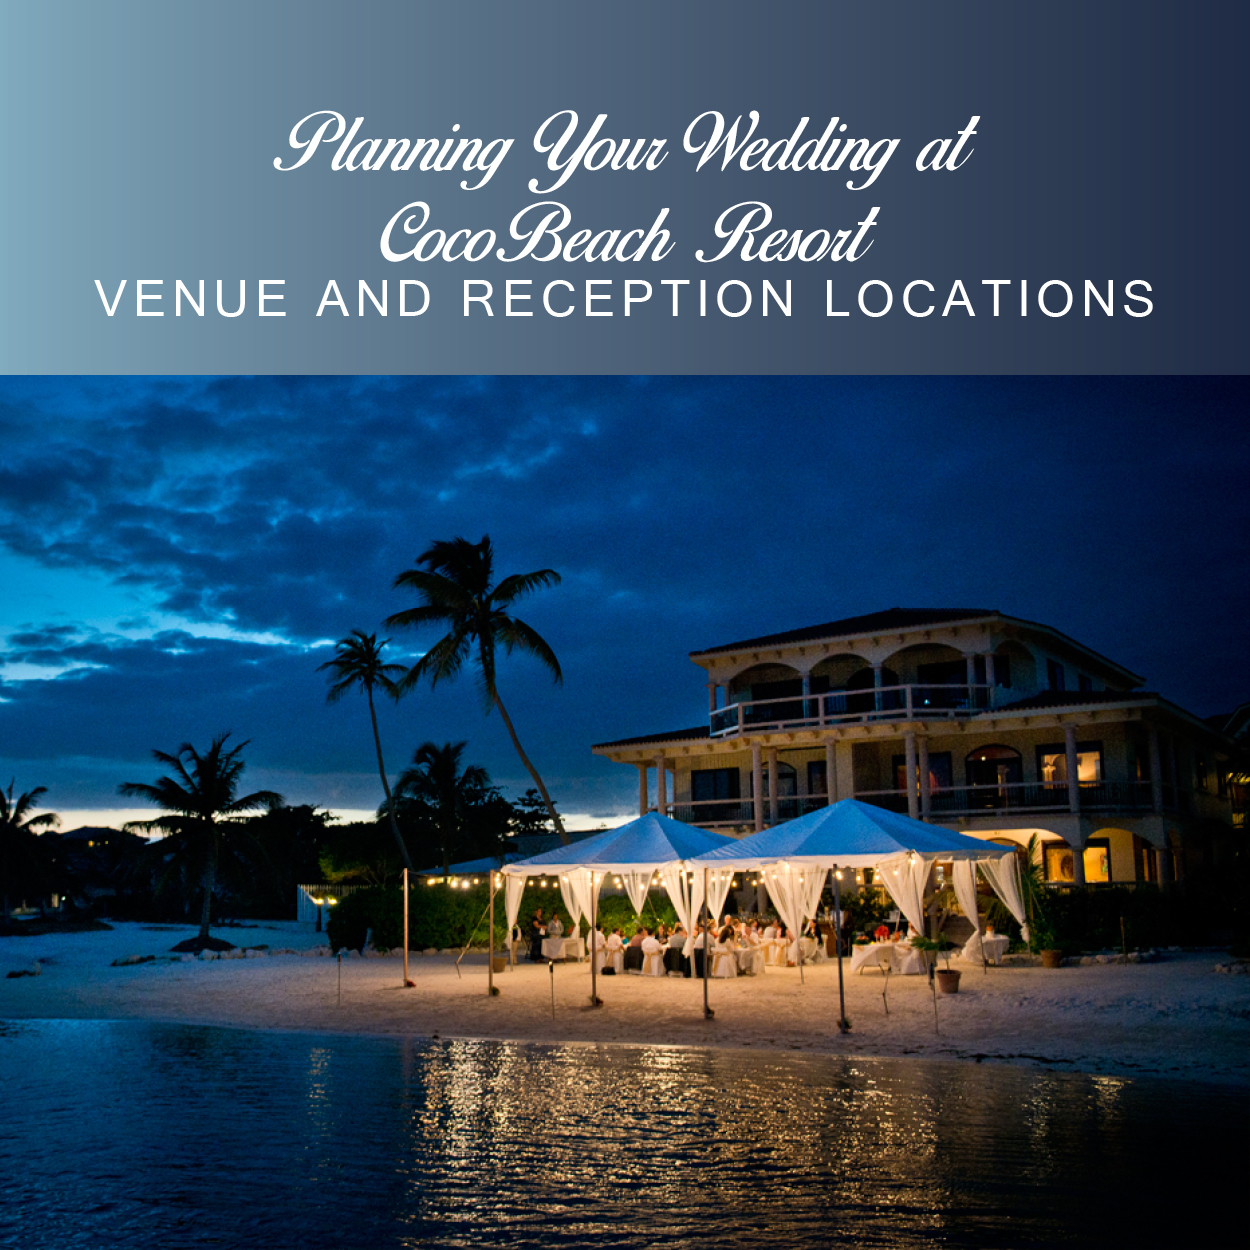 Planning Your Wedding at Coco Beach Resort